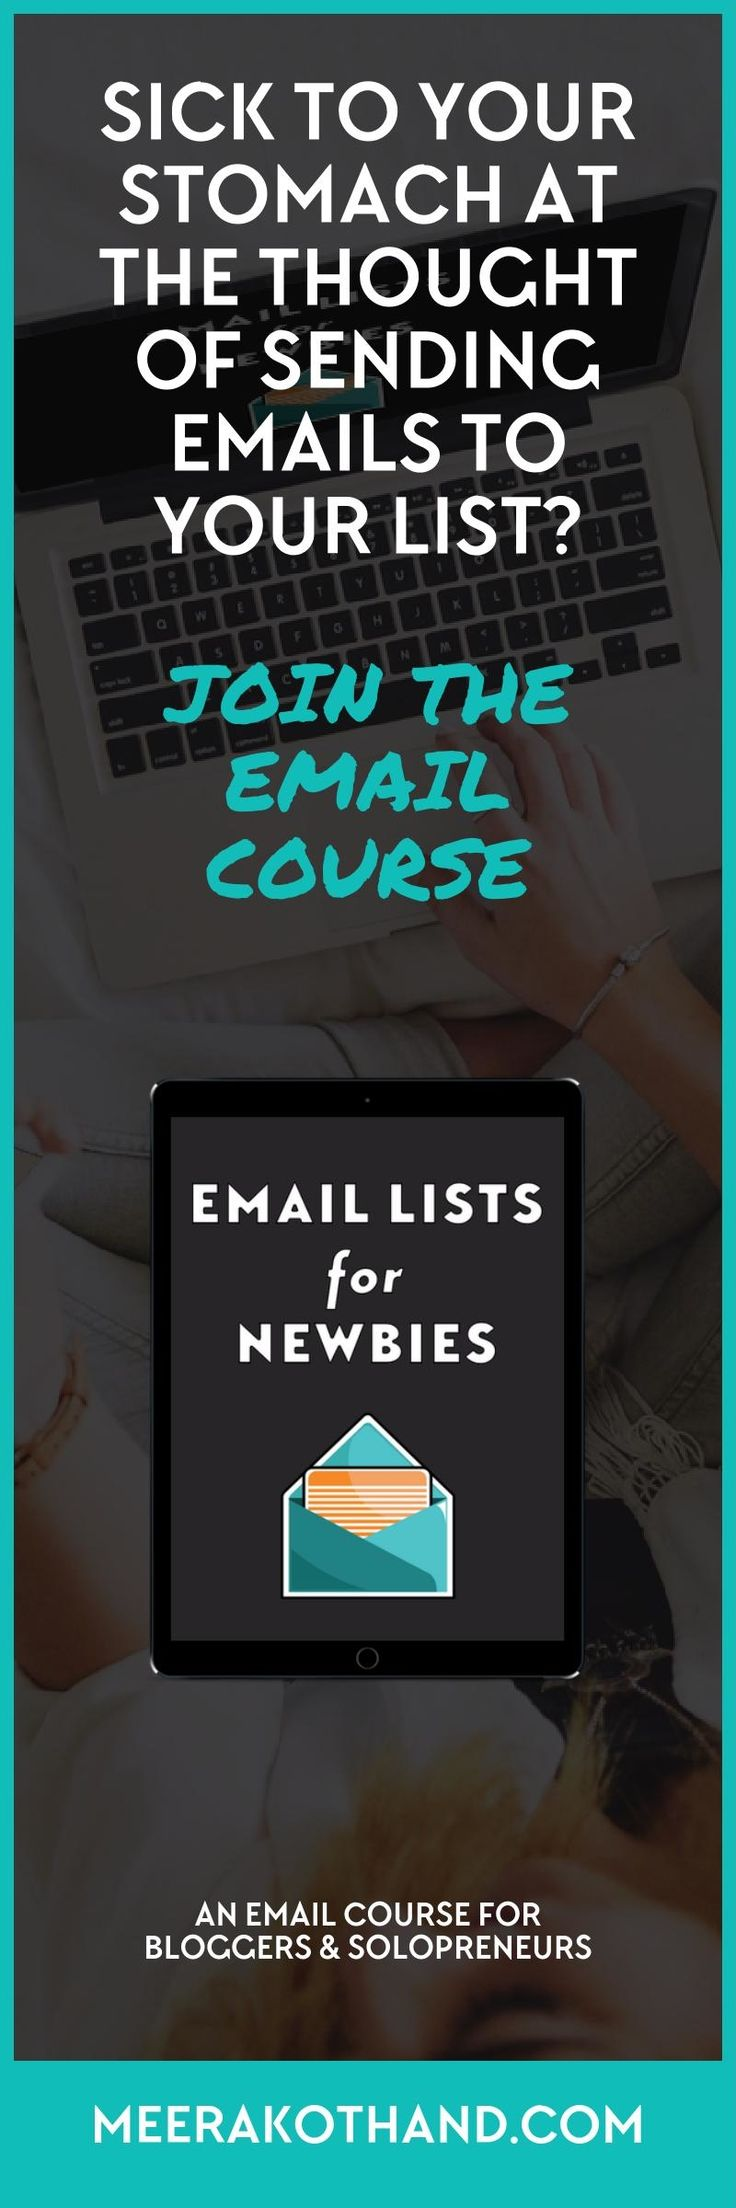 Are you sick to your stomach at the thought of sending emails to your list? You want to get serious about email but you're not sure where to start? Email Lists for Newbies is an email course for bloggers and solopreneurs to get started with email lists even if you have a tiny list or have not sent a single email.